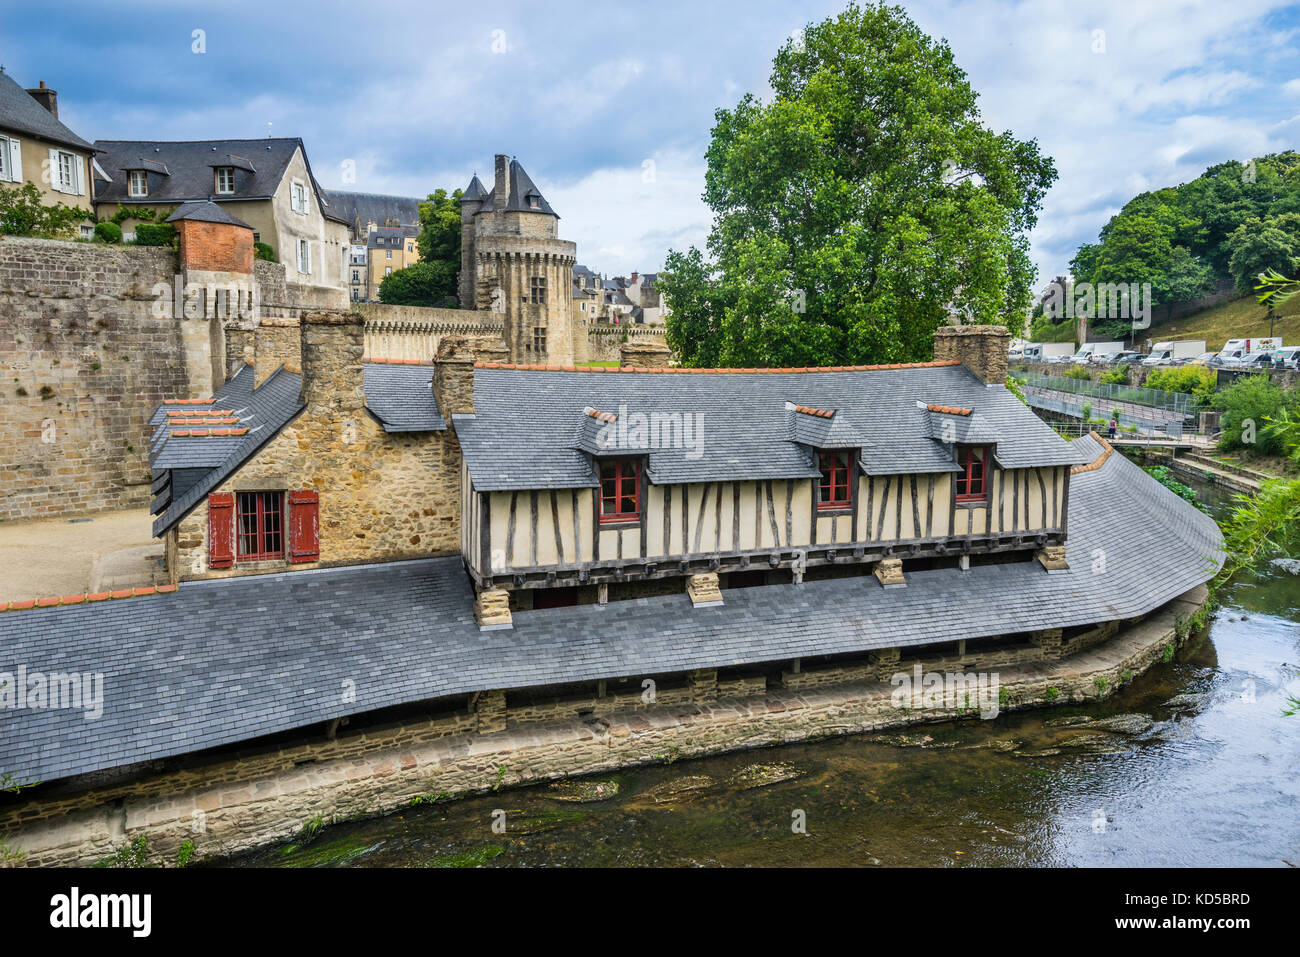 France, Brittany, Morbihan, Vannes, view f the Lavoirs de Vannes, ancient public wash house on the banks of the - Stock Image